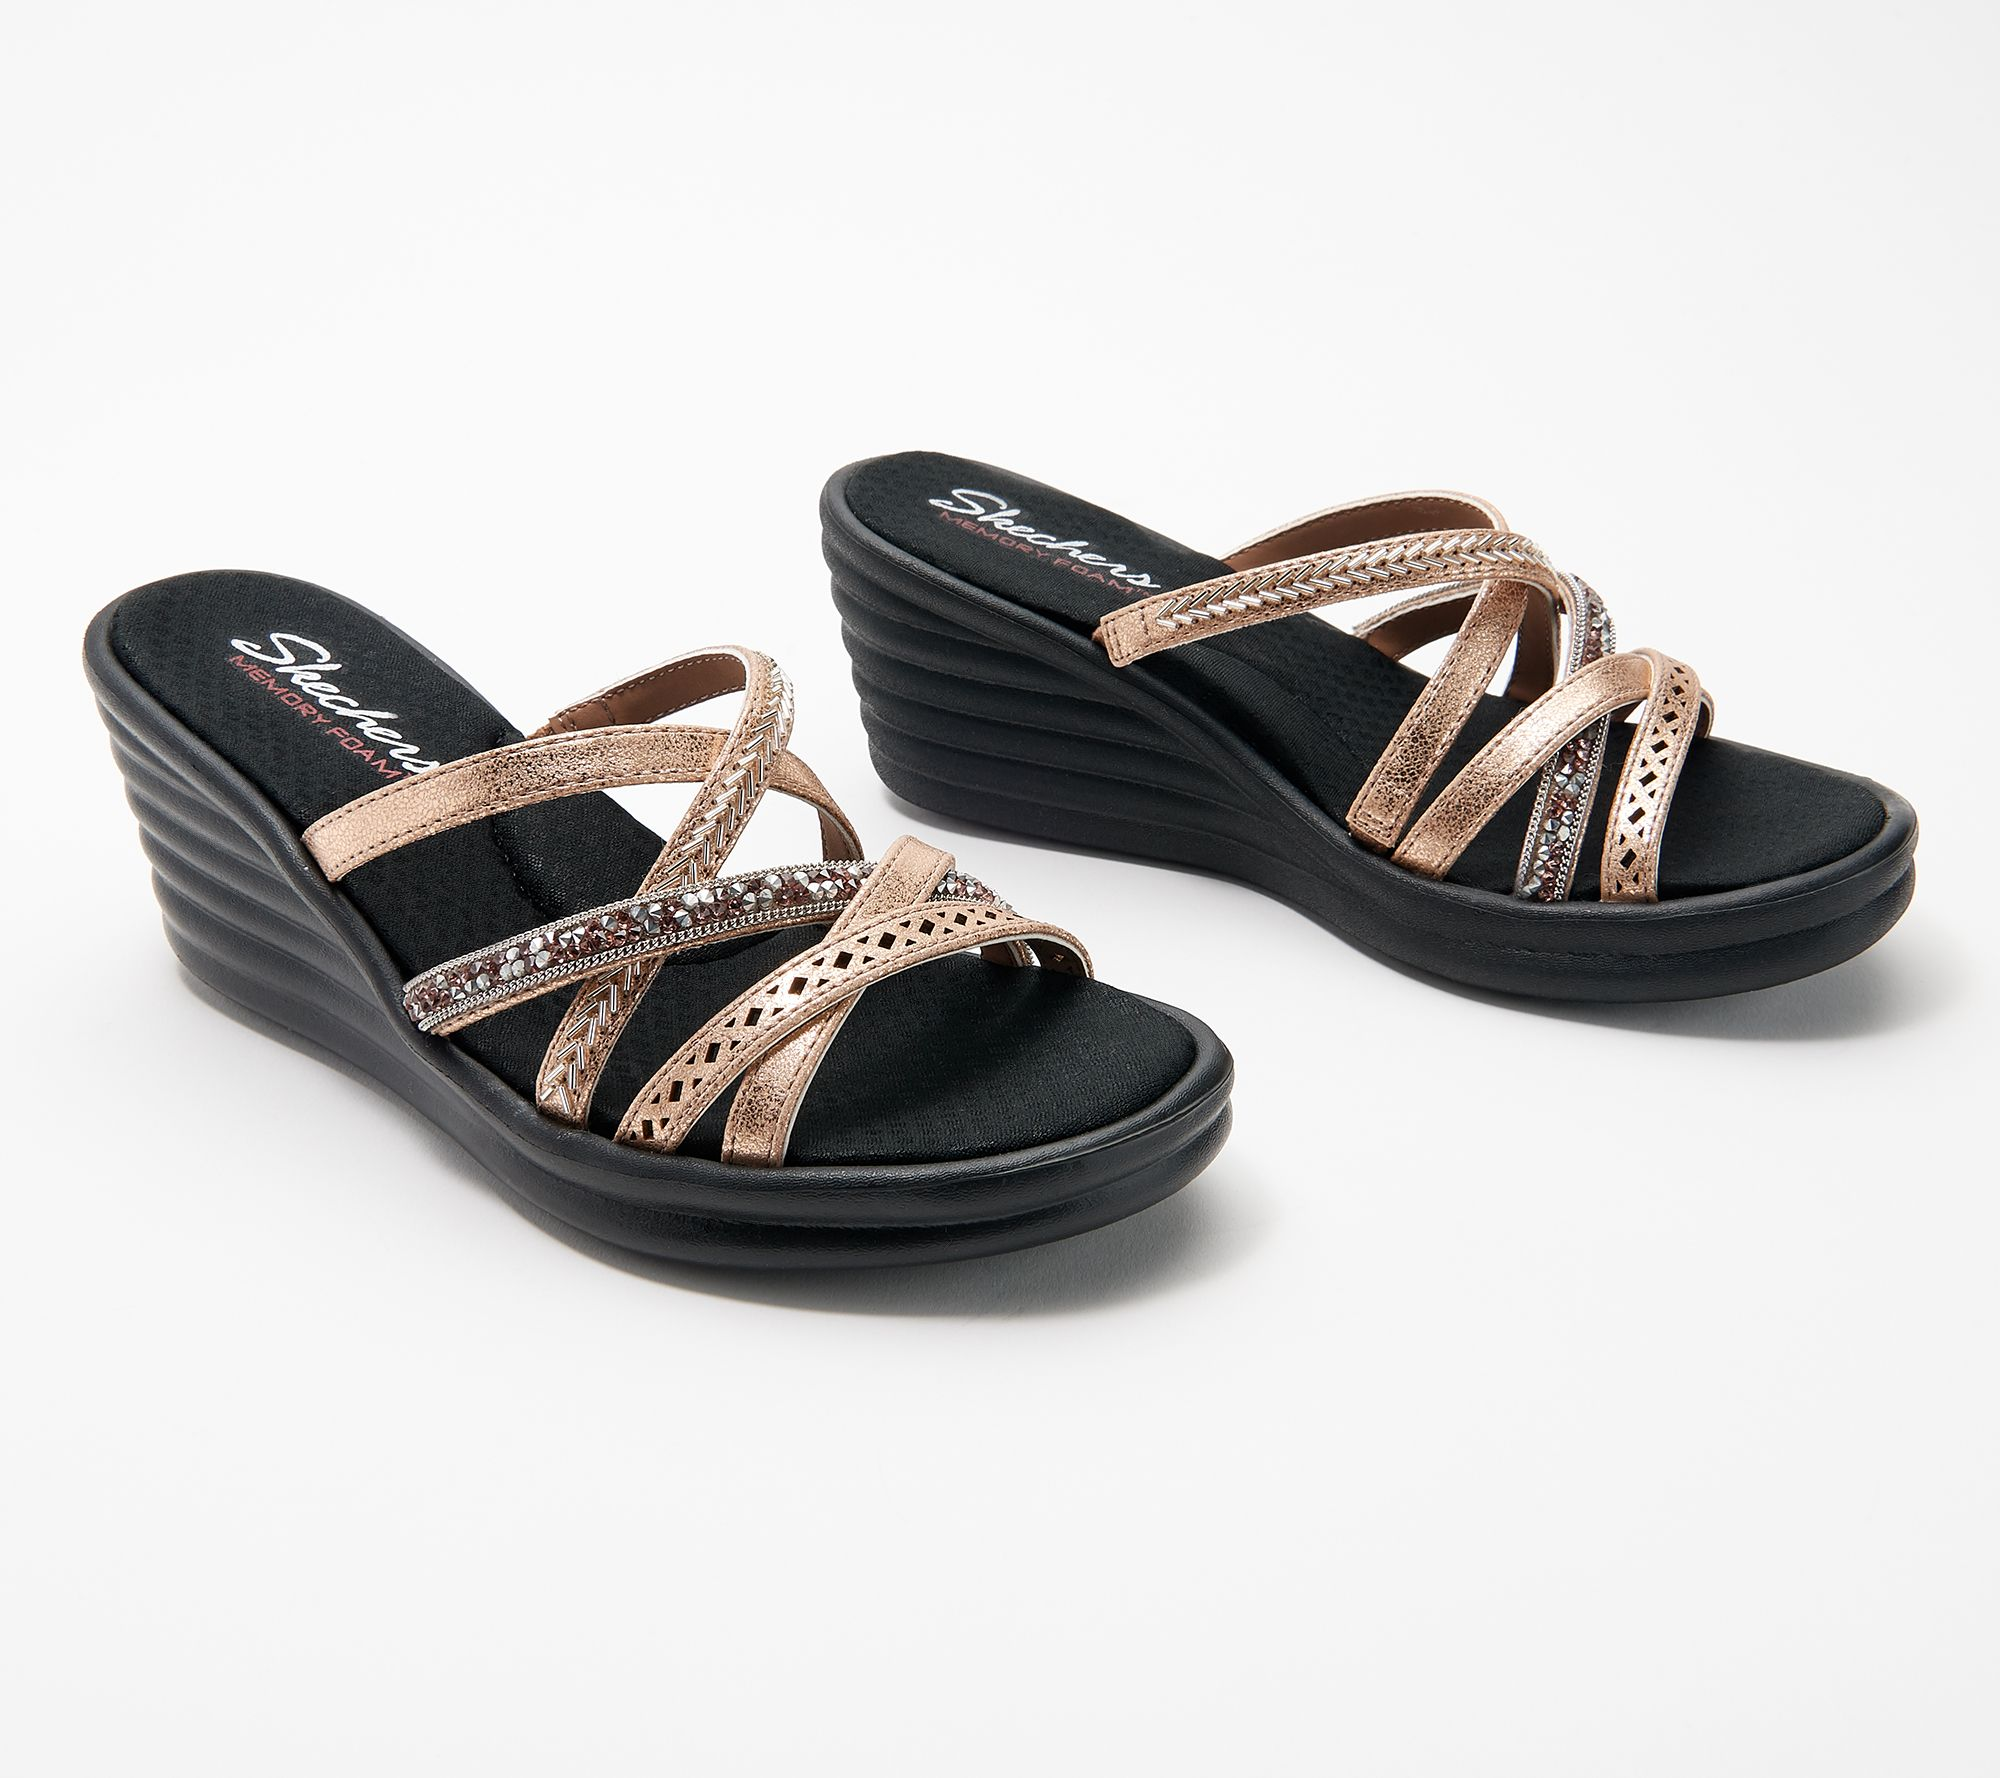 Strap Skechers New Multi Page Sandals Wave Rumbler Wedge Lassie xQrBWdeECo